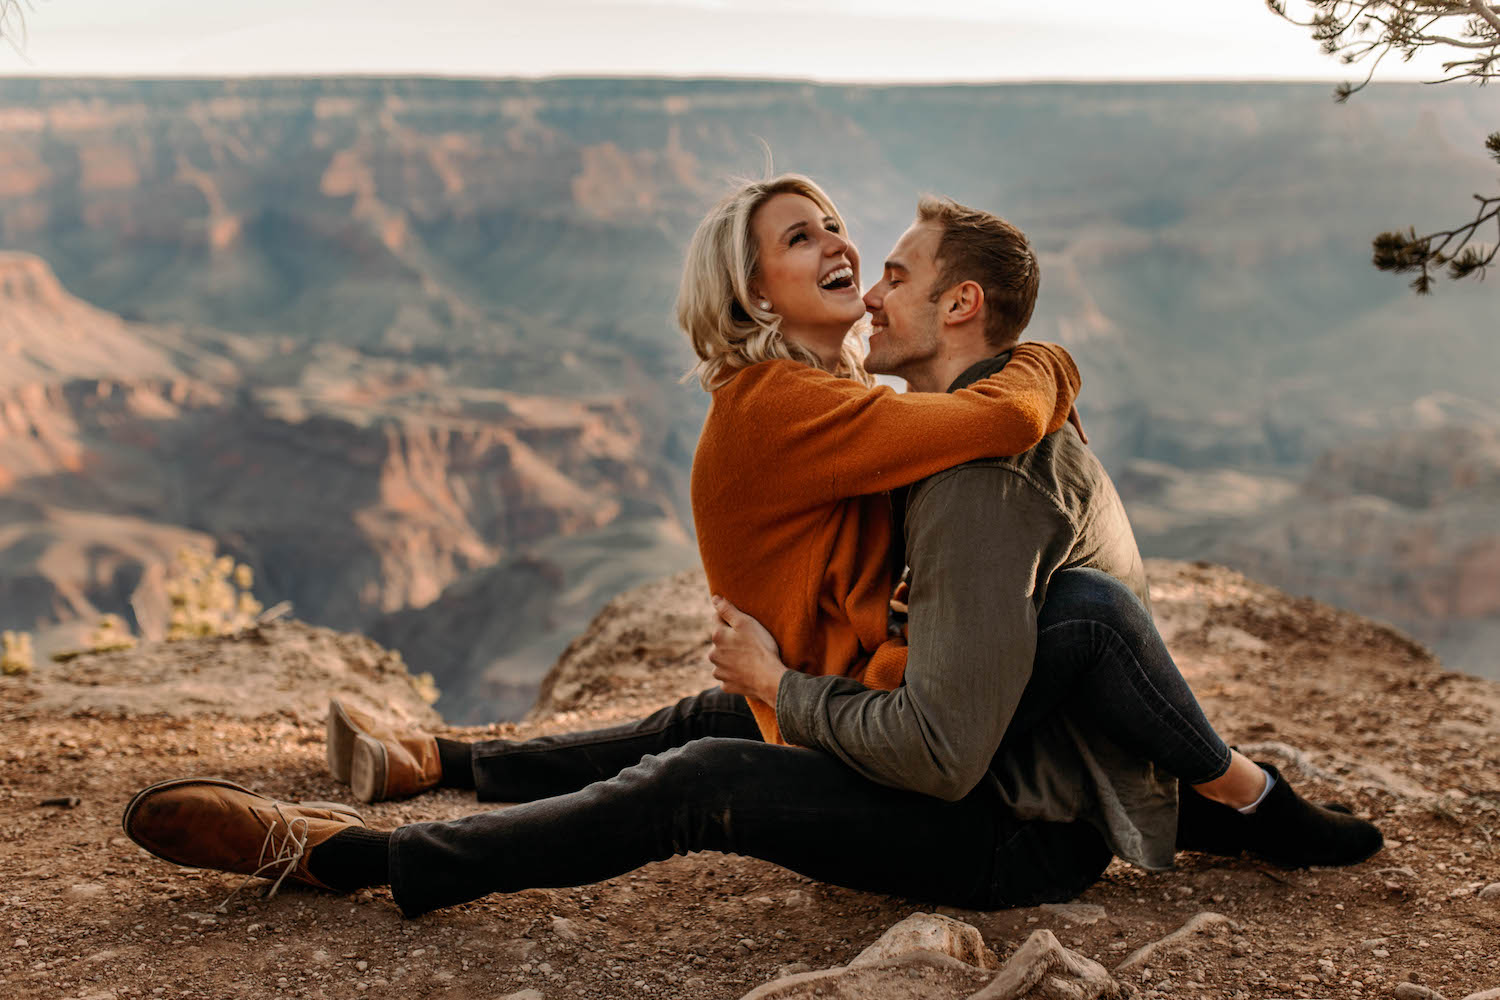 Grand Canyon Photographer Sunrise Adventure Couple Session-24.jpg